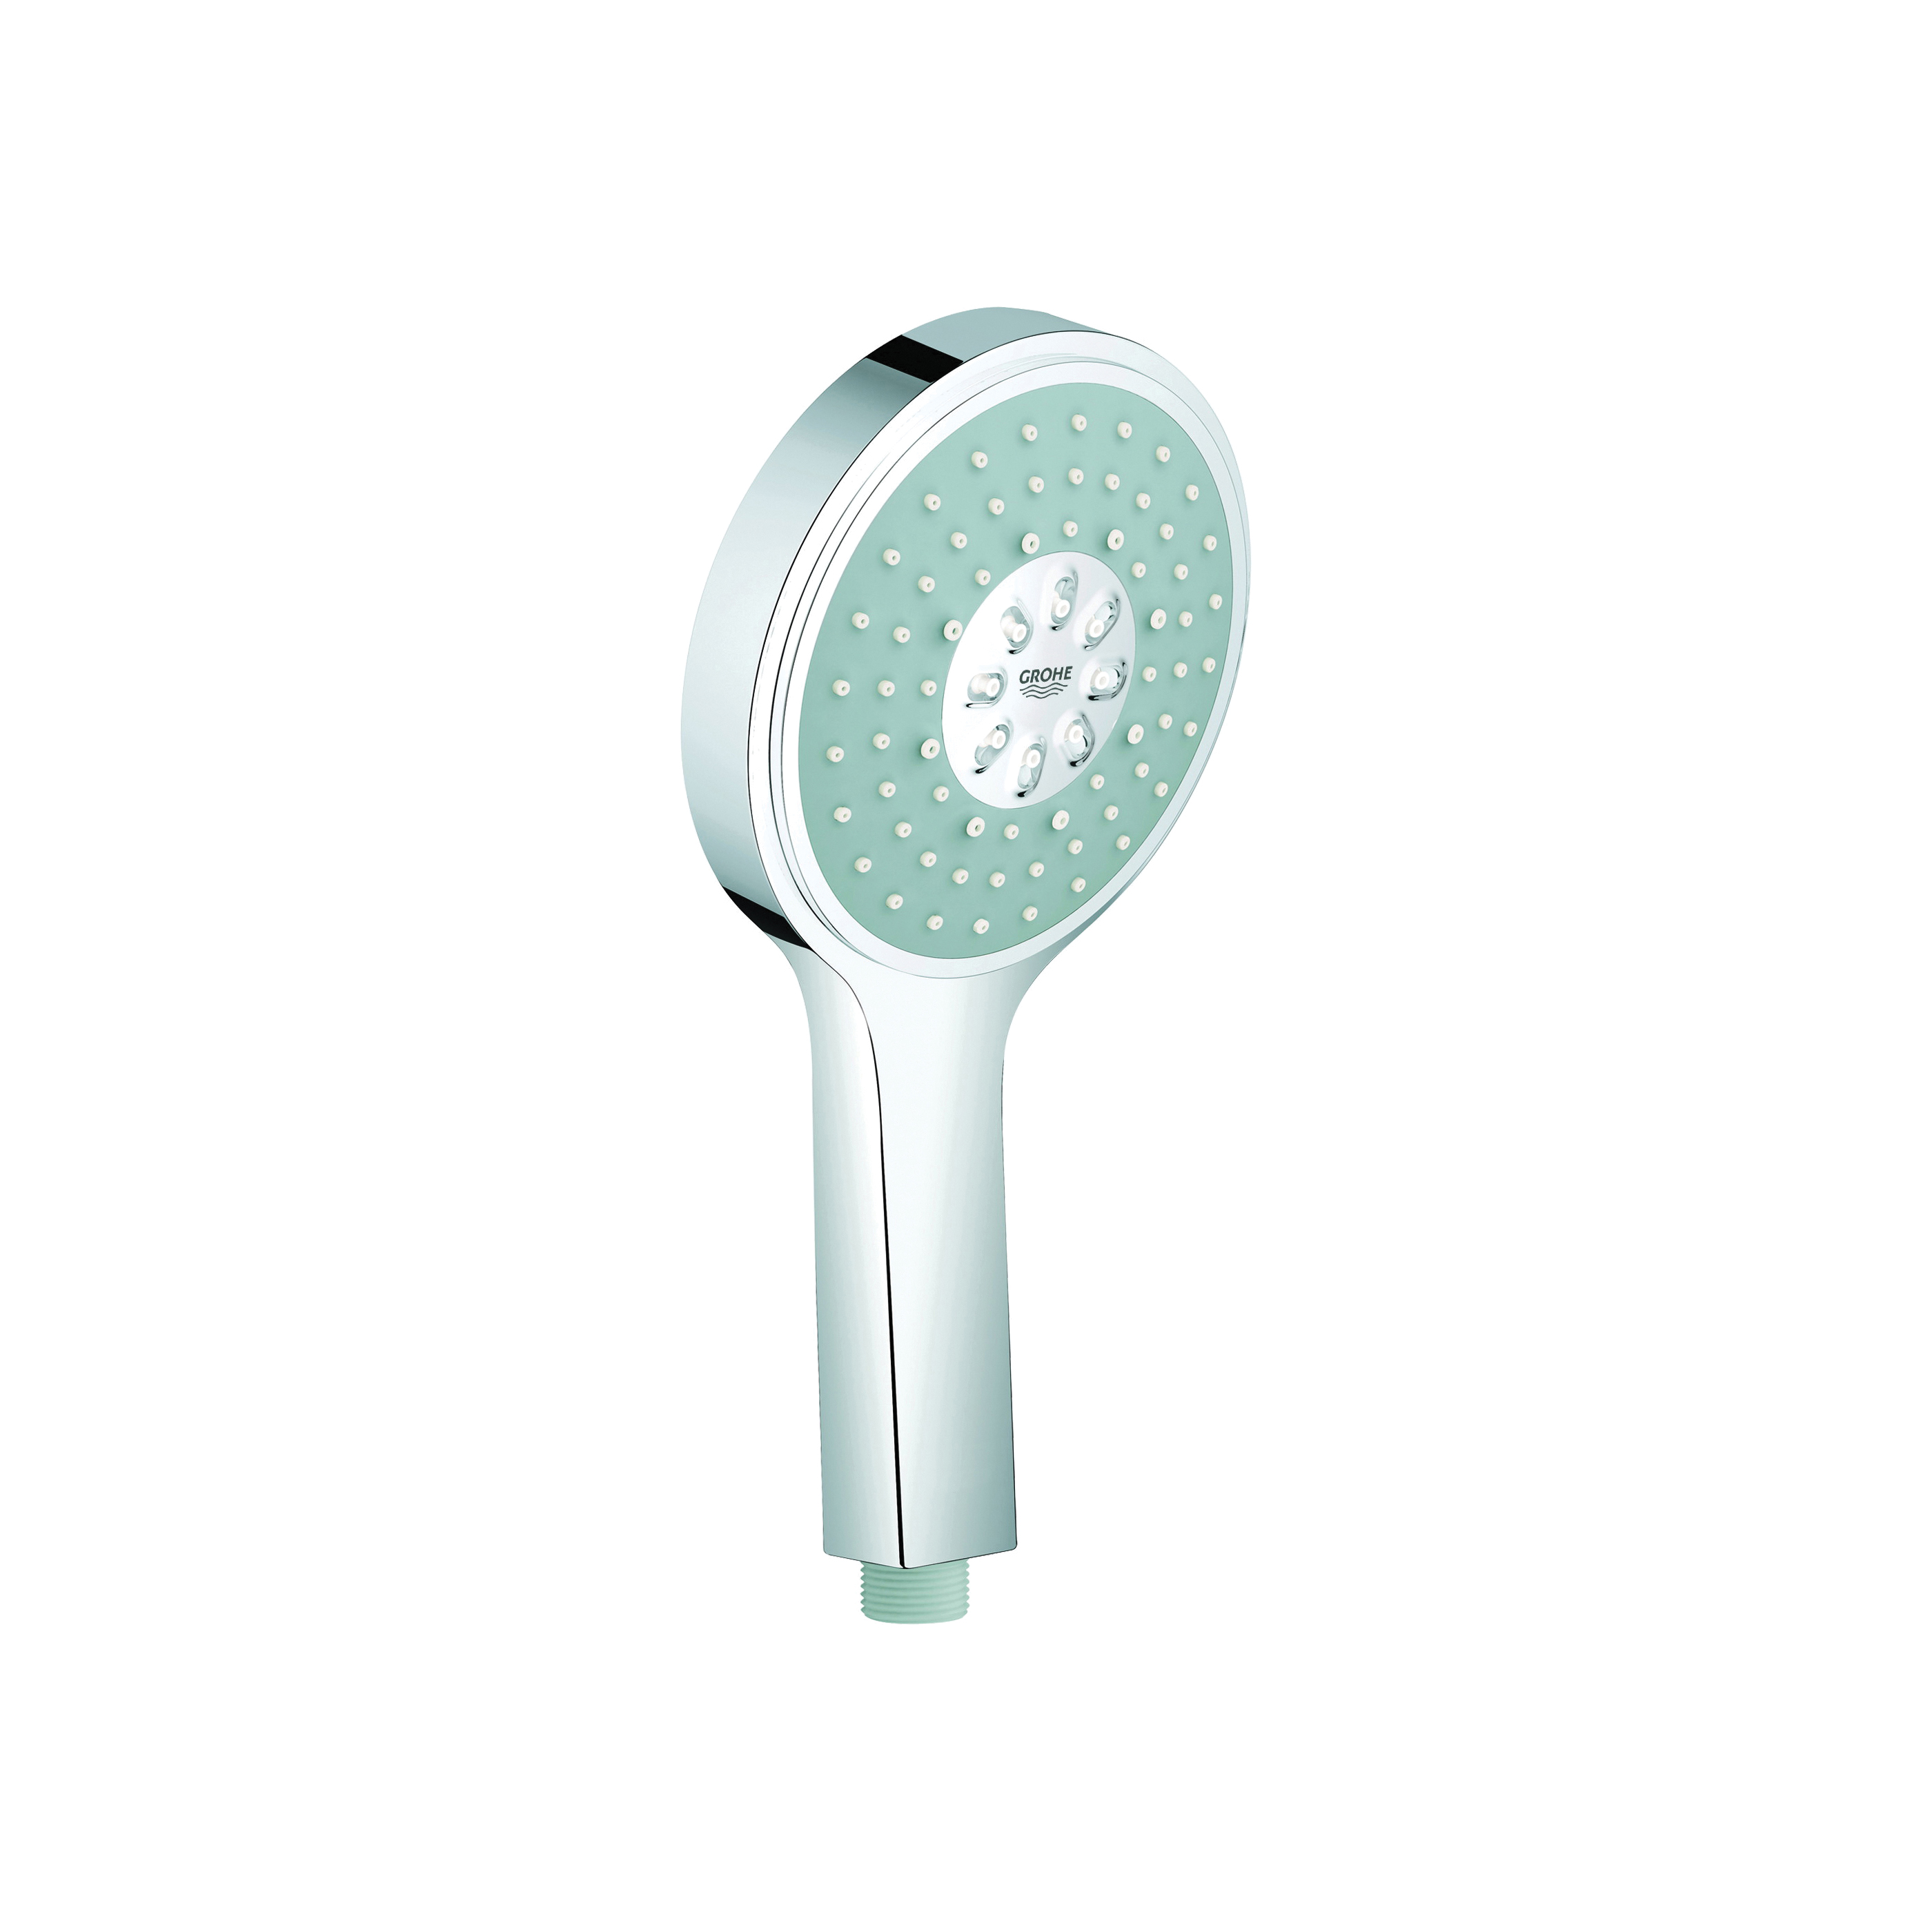 GROHE 27664000 Power&Soul® Cosmopolitan 130 Hand Shower, 2.5 gpm, 4 Sprays, 130 mm Dia Head, 1/2 in, Import